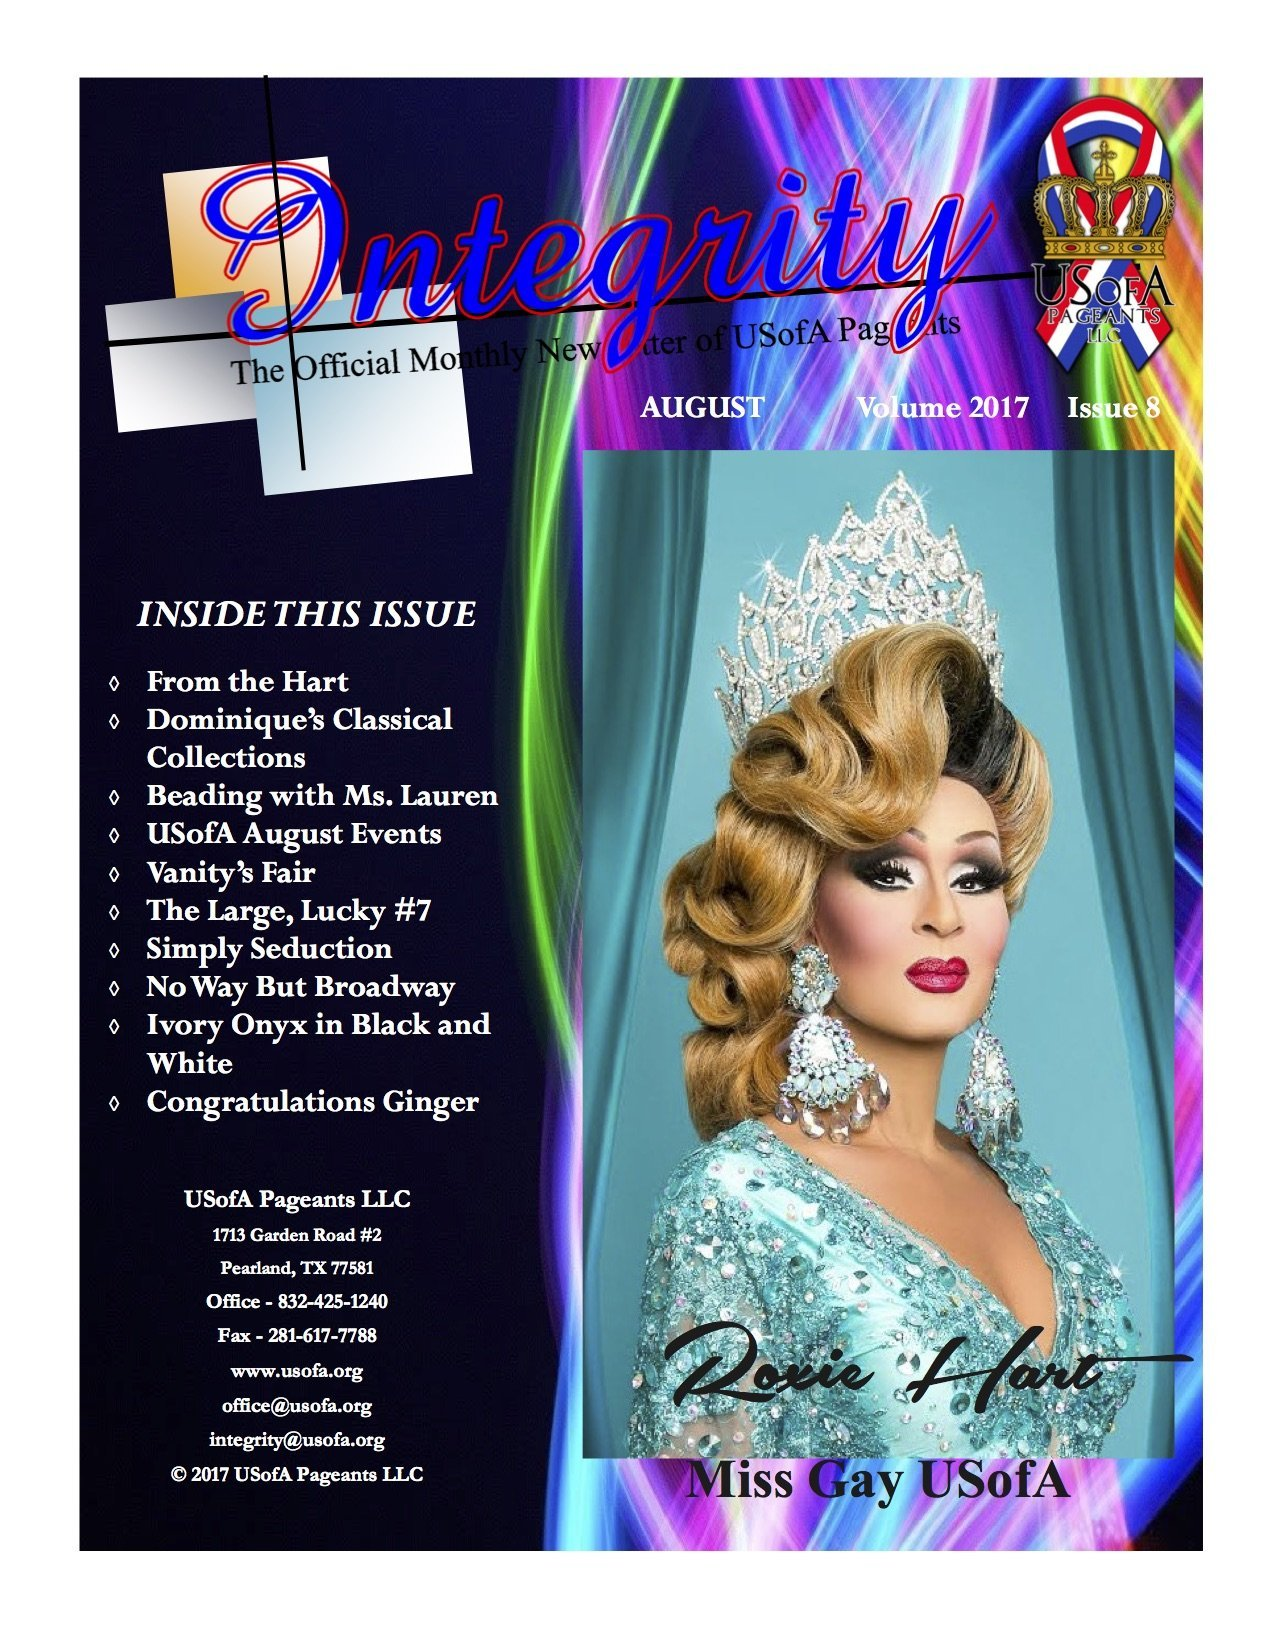 USofA Pageants Integrity Newsletter August 2017